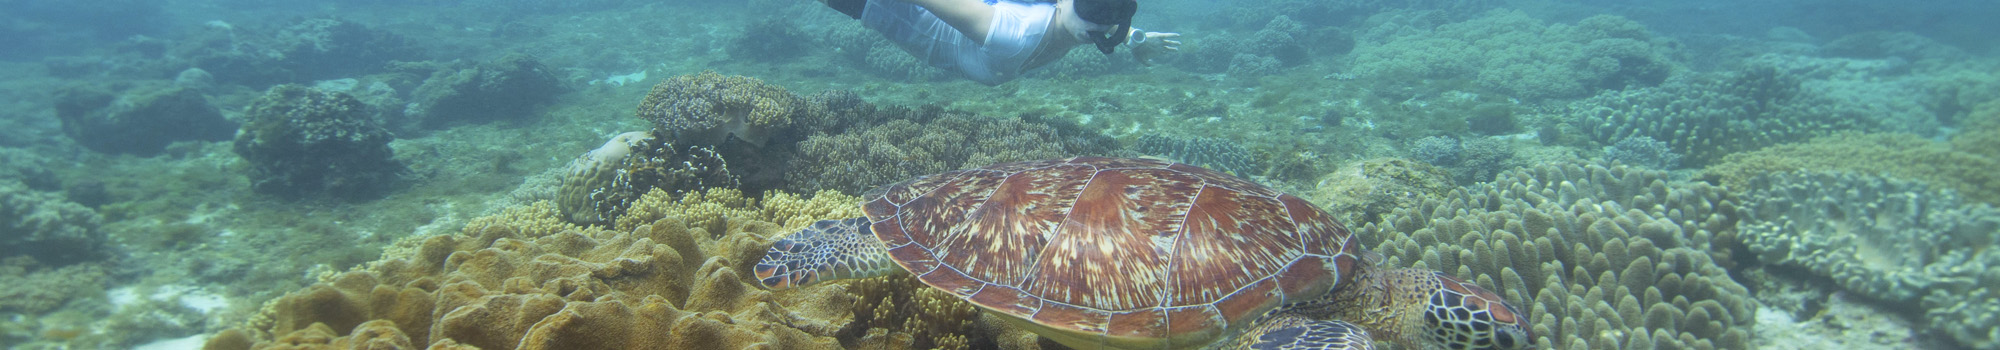 Snorkeling with turtles in Apo island is accessible for everybody with Atmosphere Resort in the Philippines